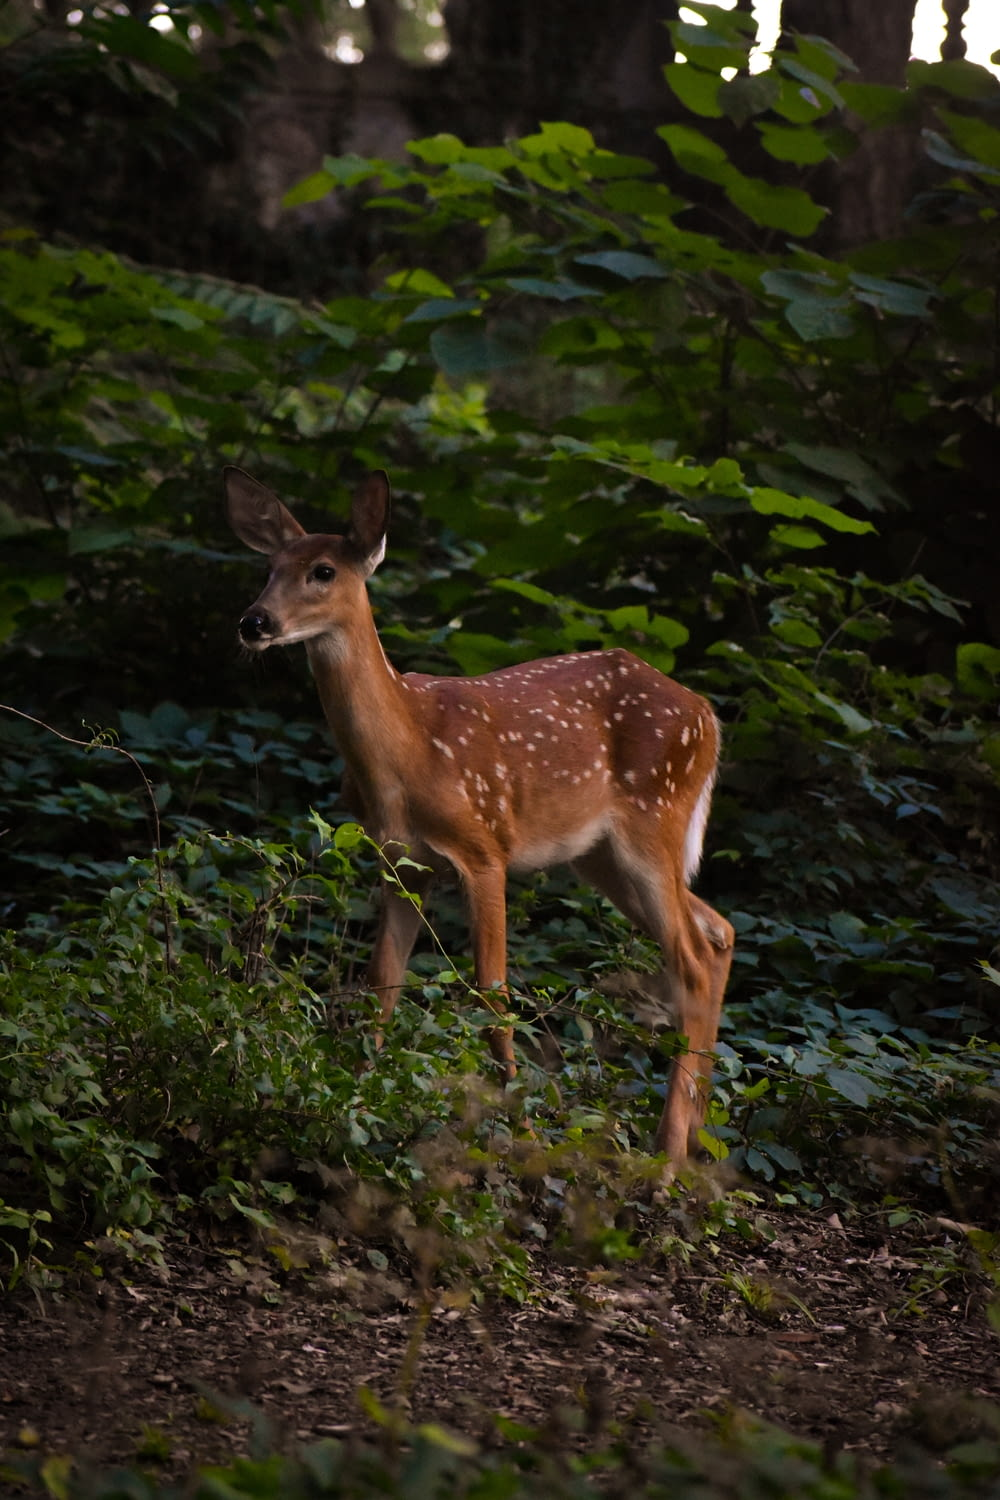 brown deer standing on green grass during daytime